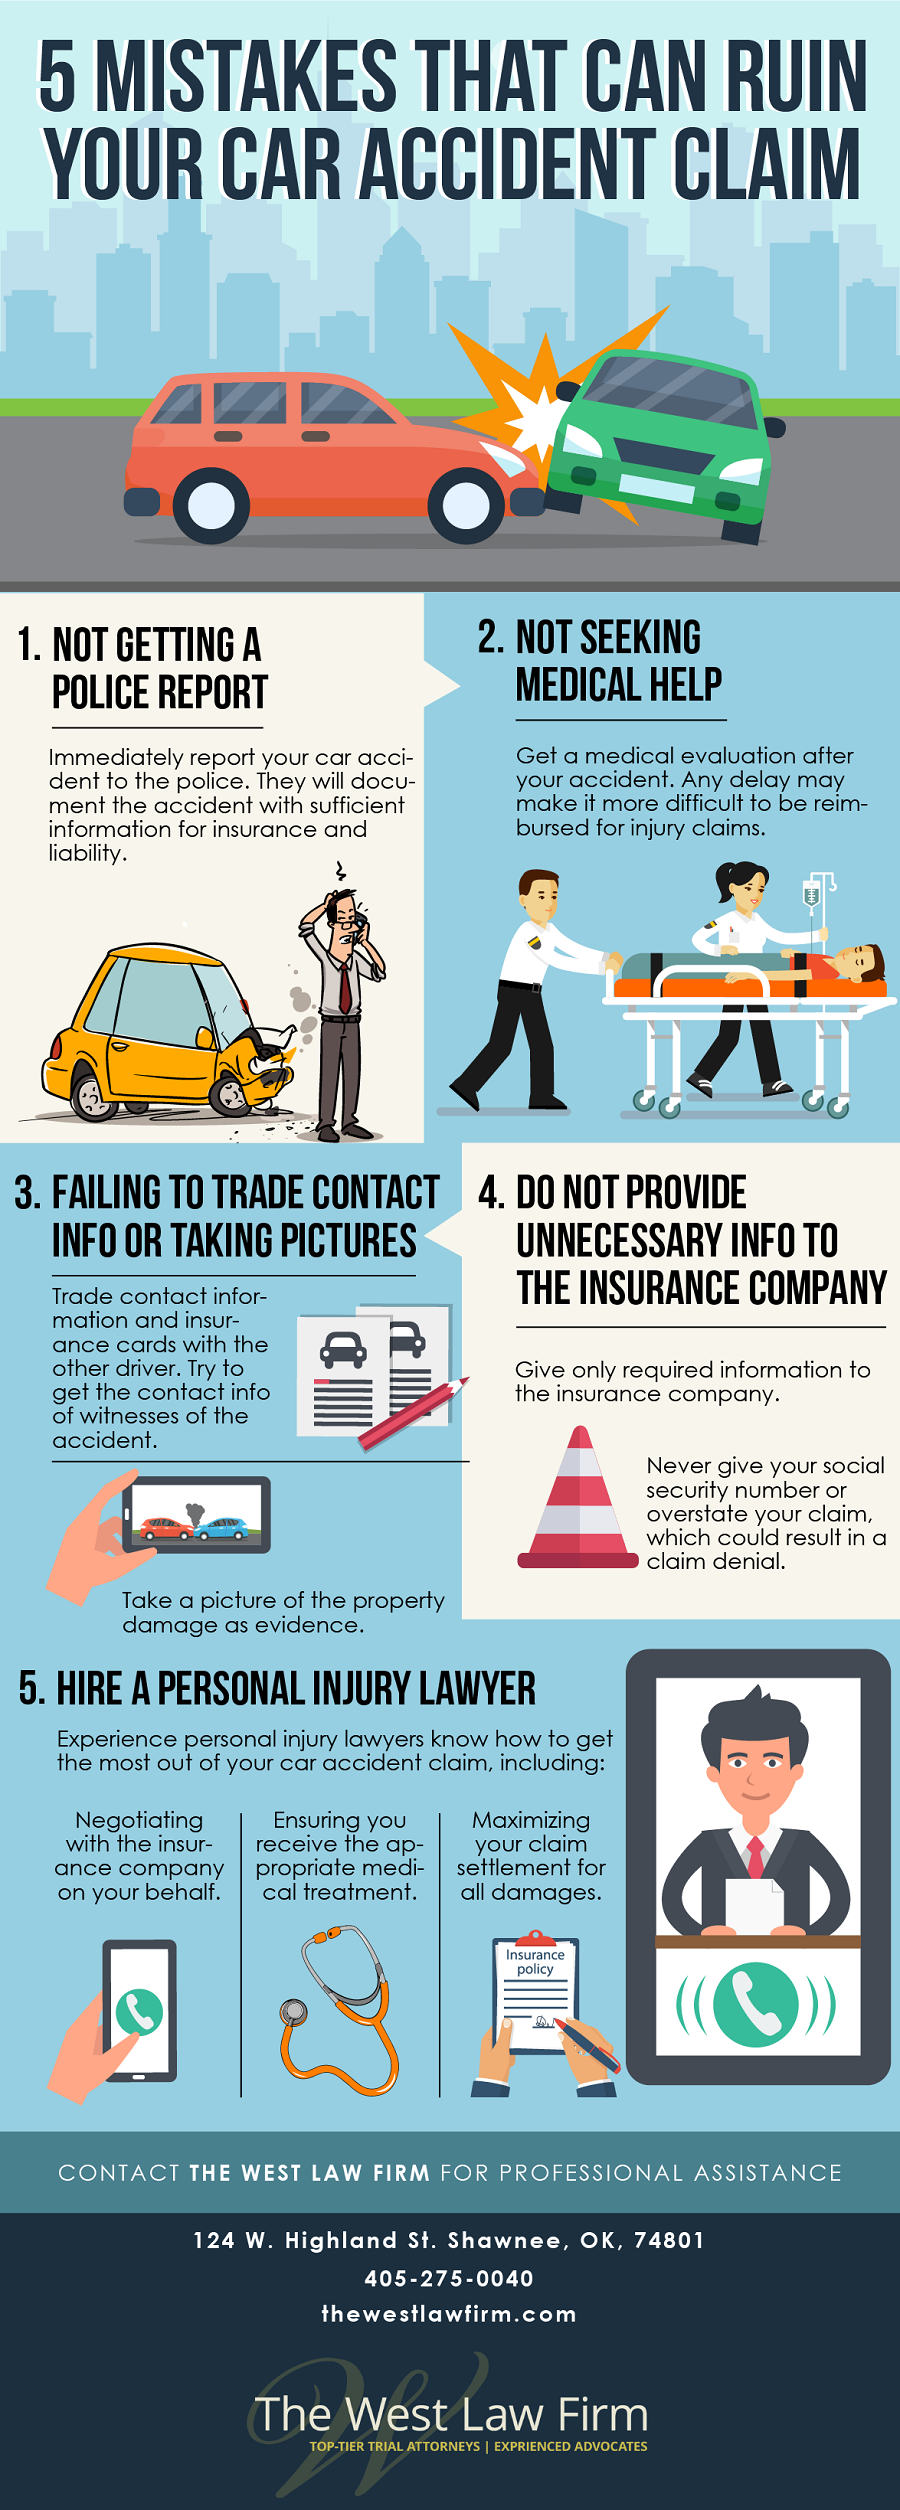 5 Mistakes That Can Ruin Your car Accident Claim